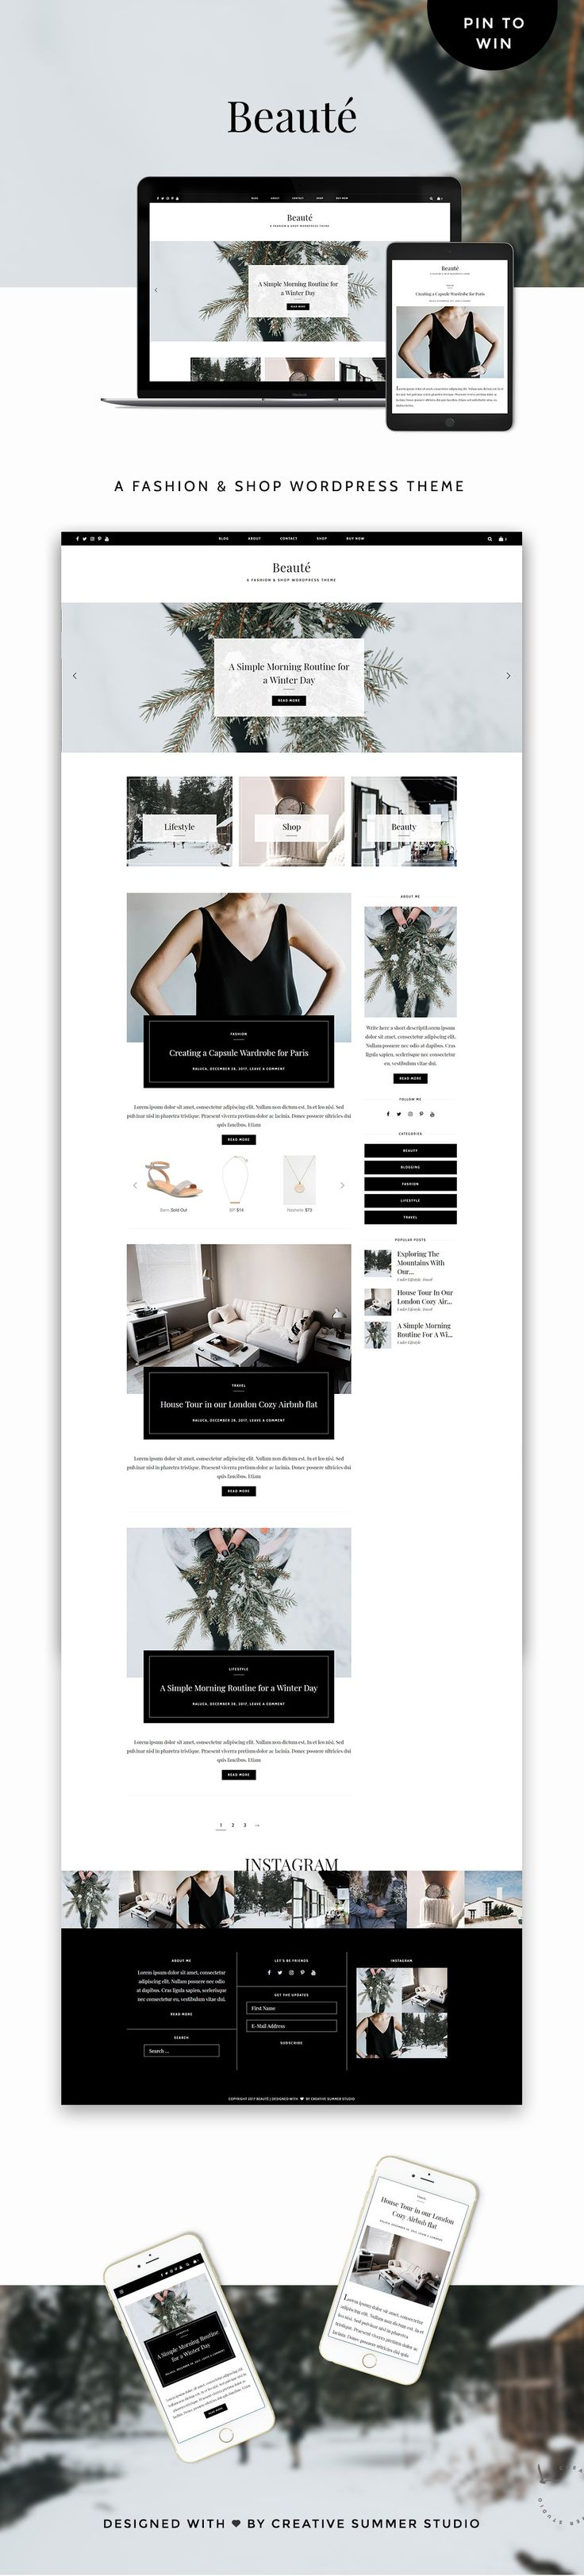 Meet Beaute, a fashion & shop WordPress theme that will beautifully highlight your content and will help you take your blog to the next level. Crafted with fashion & beauty bloggers in mind, with a gorgeous design, clean typography, and unique stylish details added to the right places, Beaute theme will instantly make you look legit in the blogosphere and it will help you start monetizing your blog in no minutes.